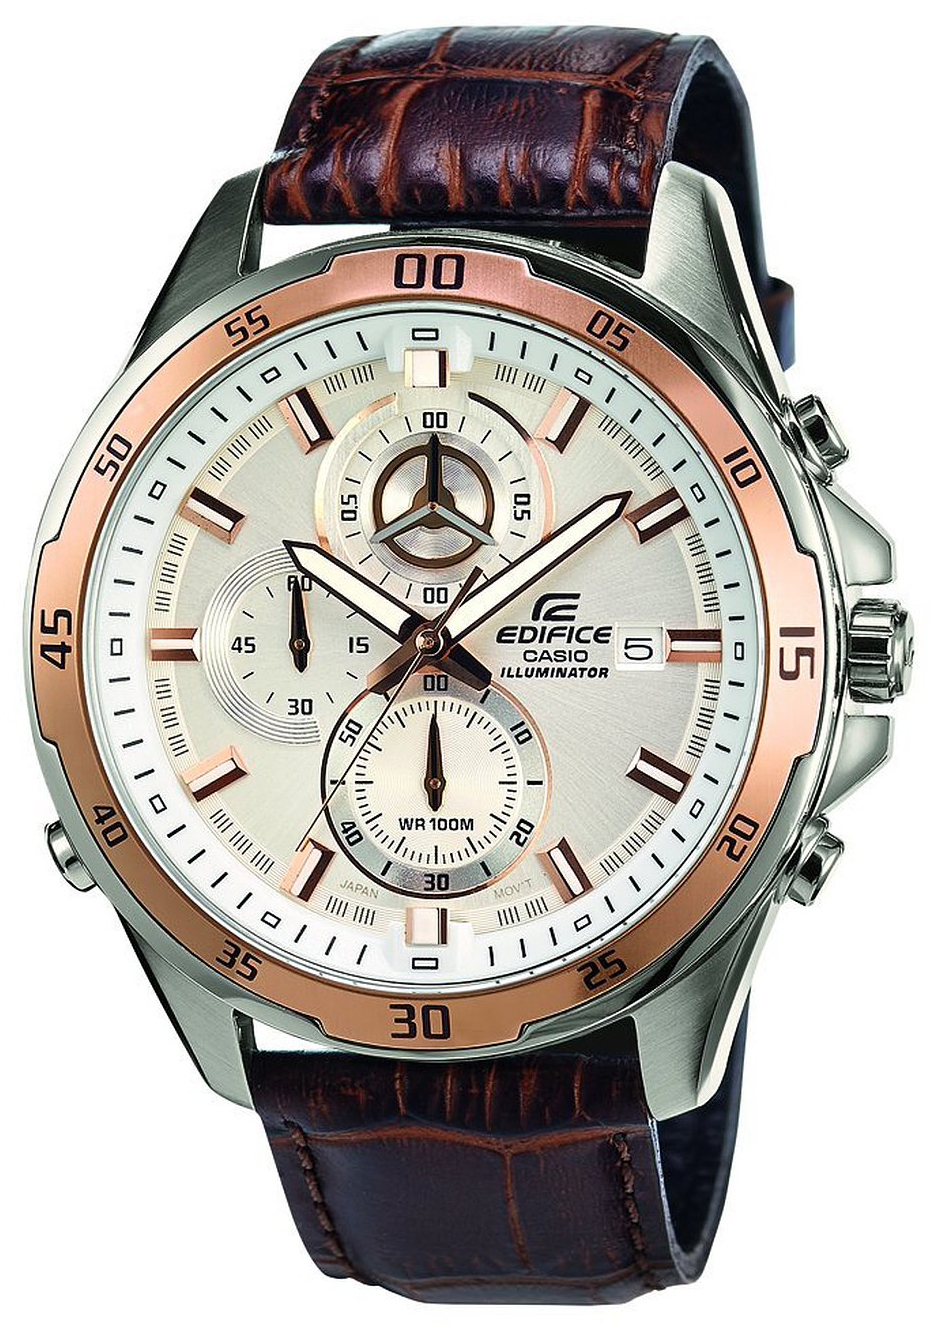 Casio Edifice Herrklocka EFR-547L-7AVUEF Vit/Läder Ø47 mm - Casio